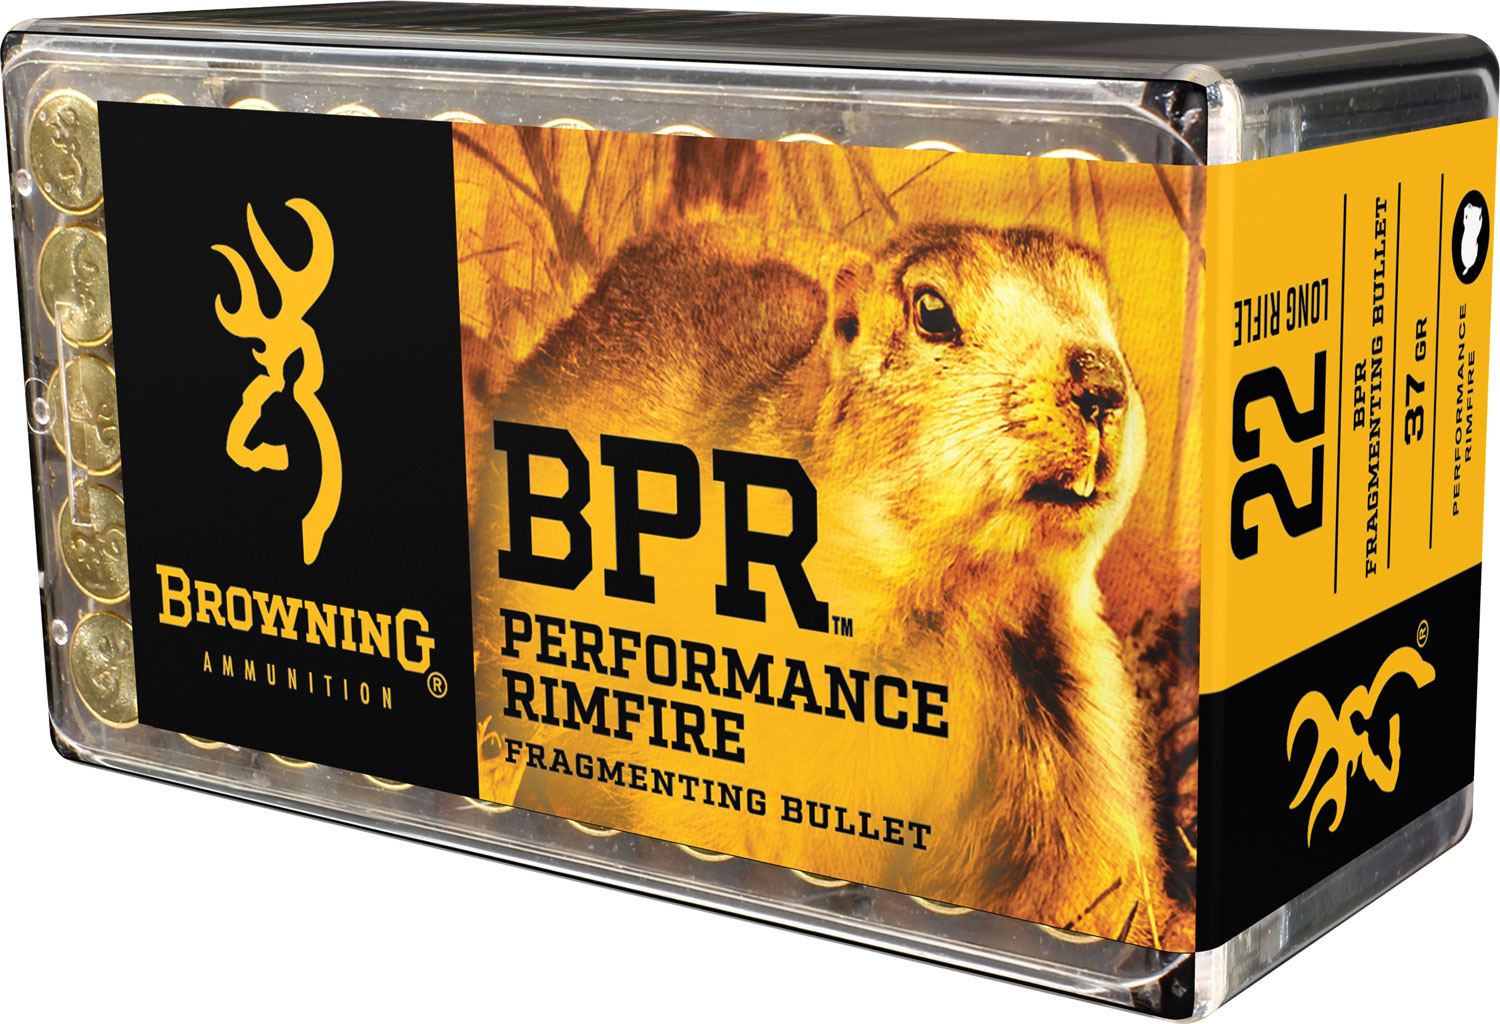 Browning Ammo B194122050 BPR Performance 22 Long Rifle 37 GR Fragmenting 1000rds